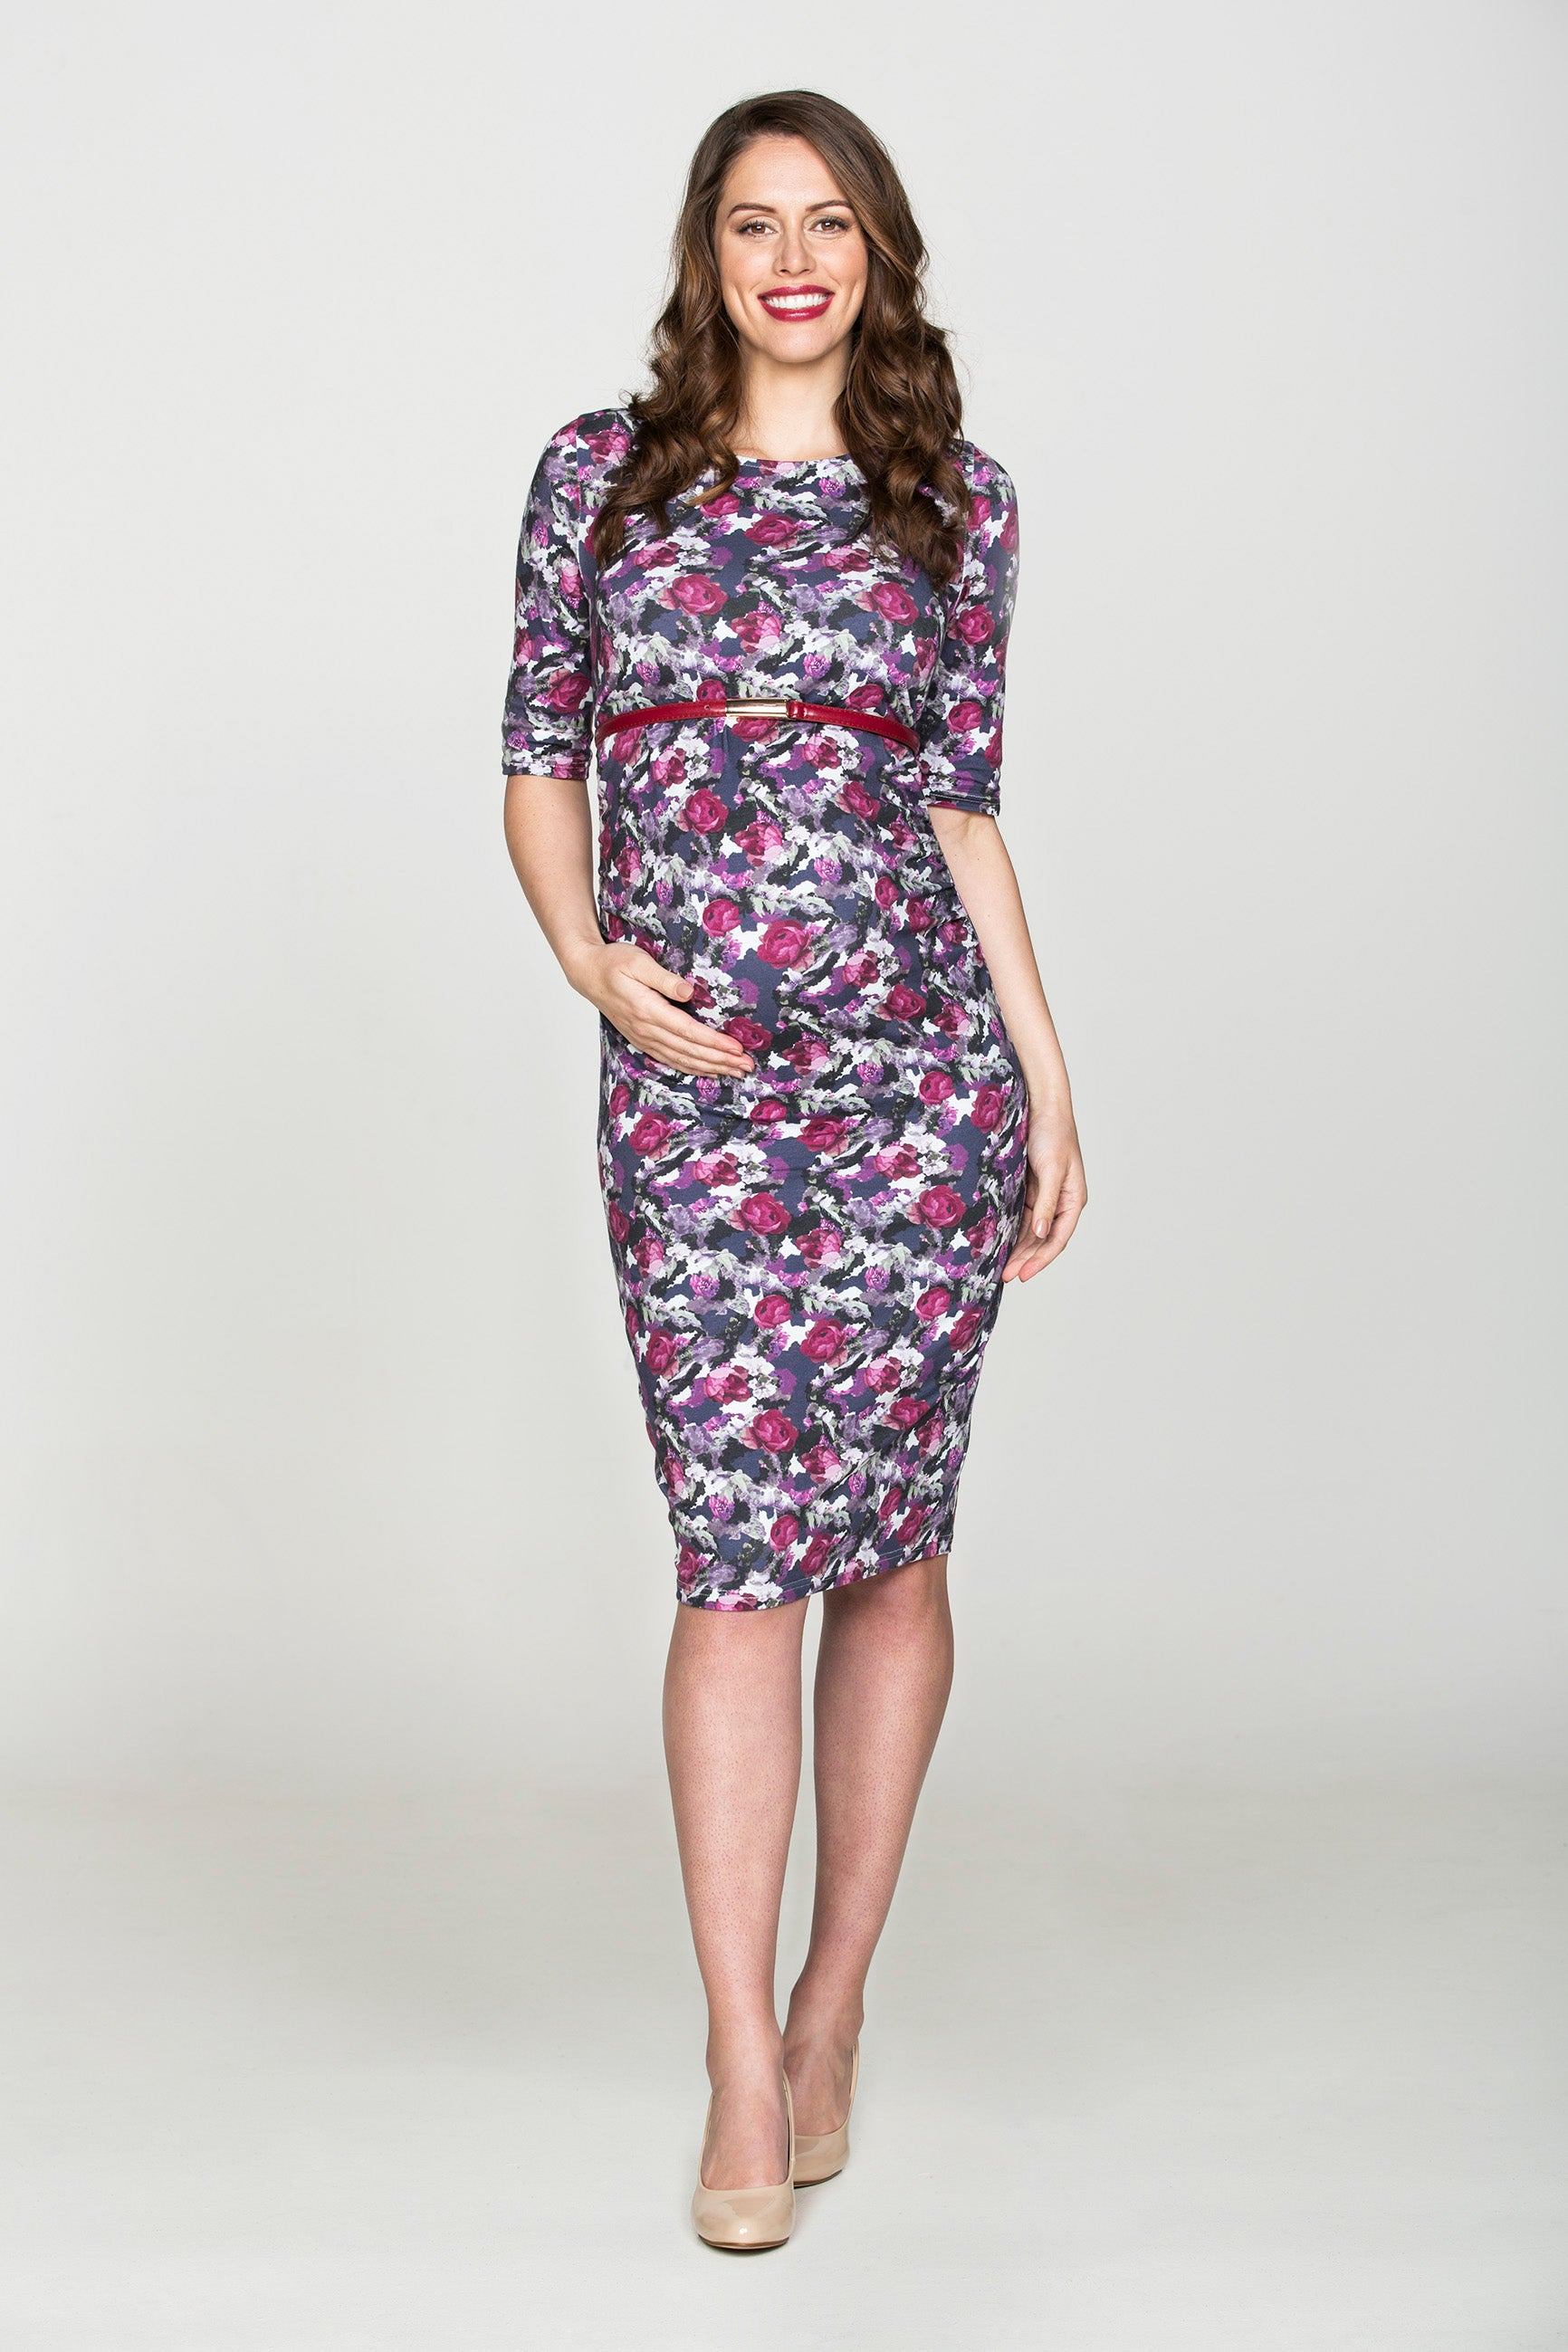 Twilight Romance Dress - Bubba Belly Maternity Wear